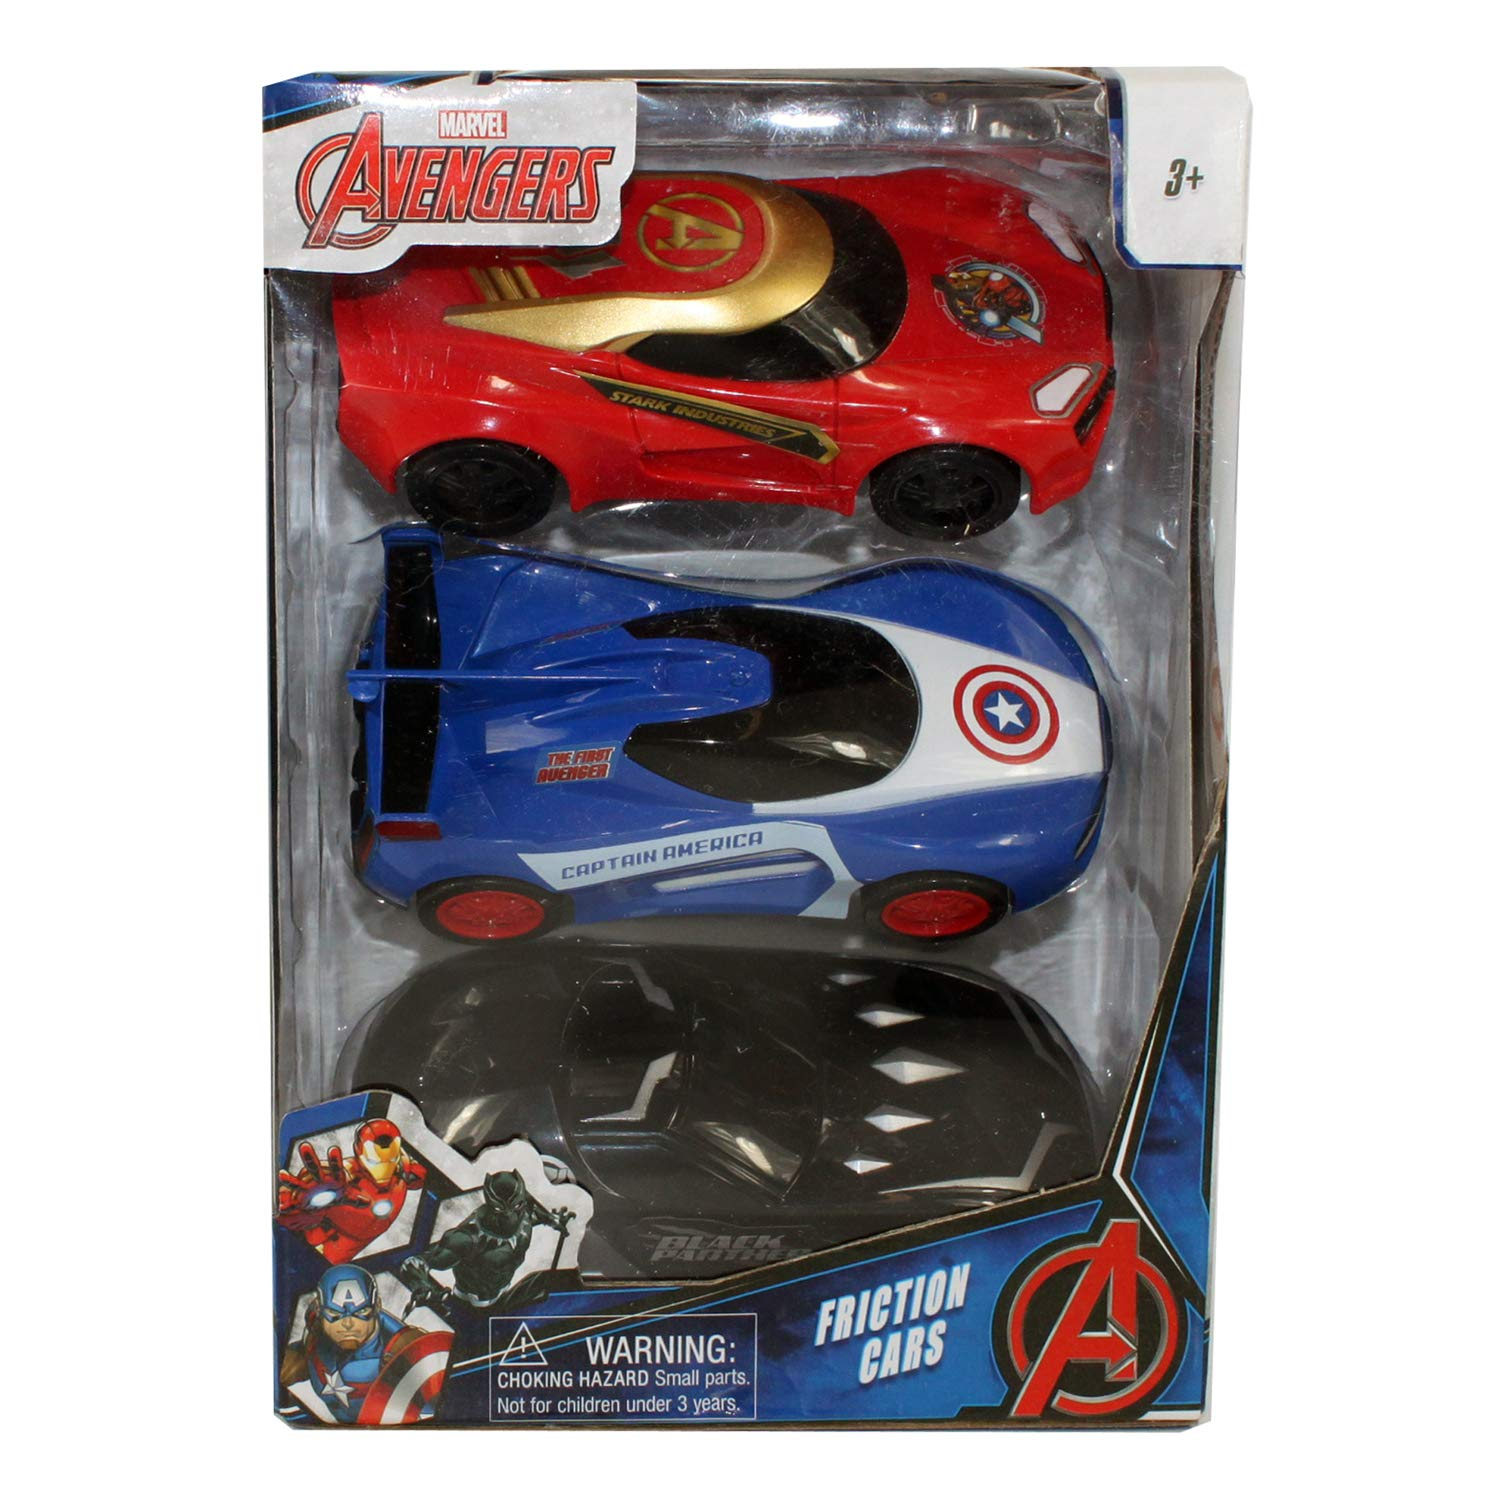 Connie N Randy Marvel Avengers Set of 3 Friction Cars